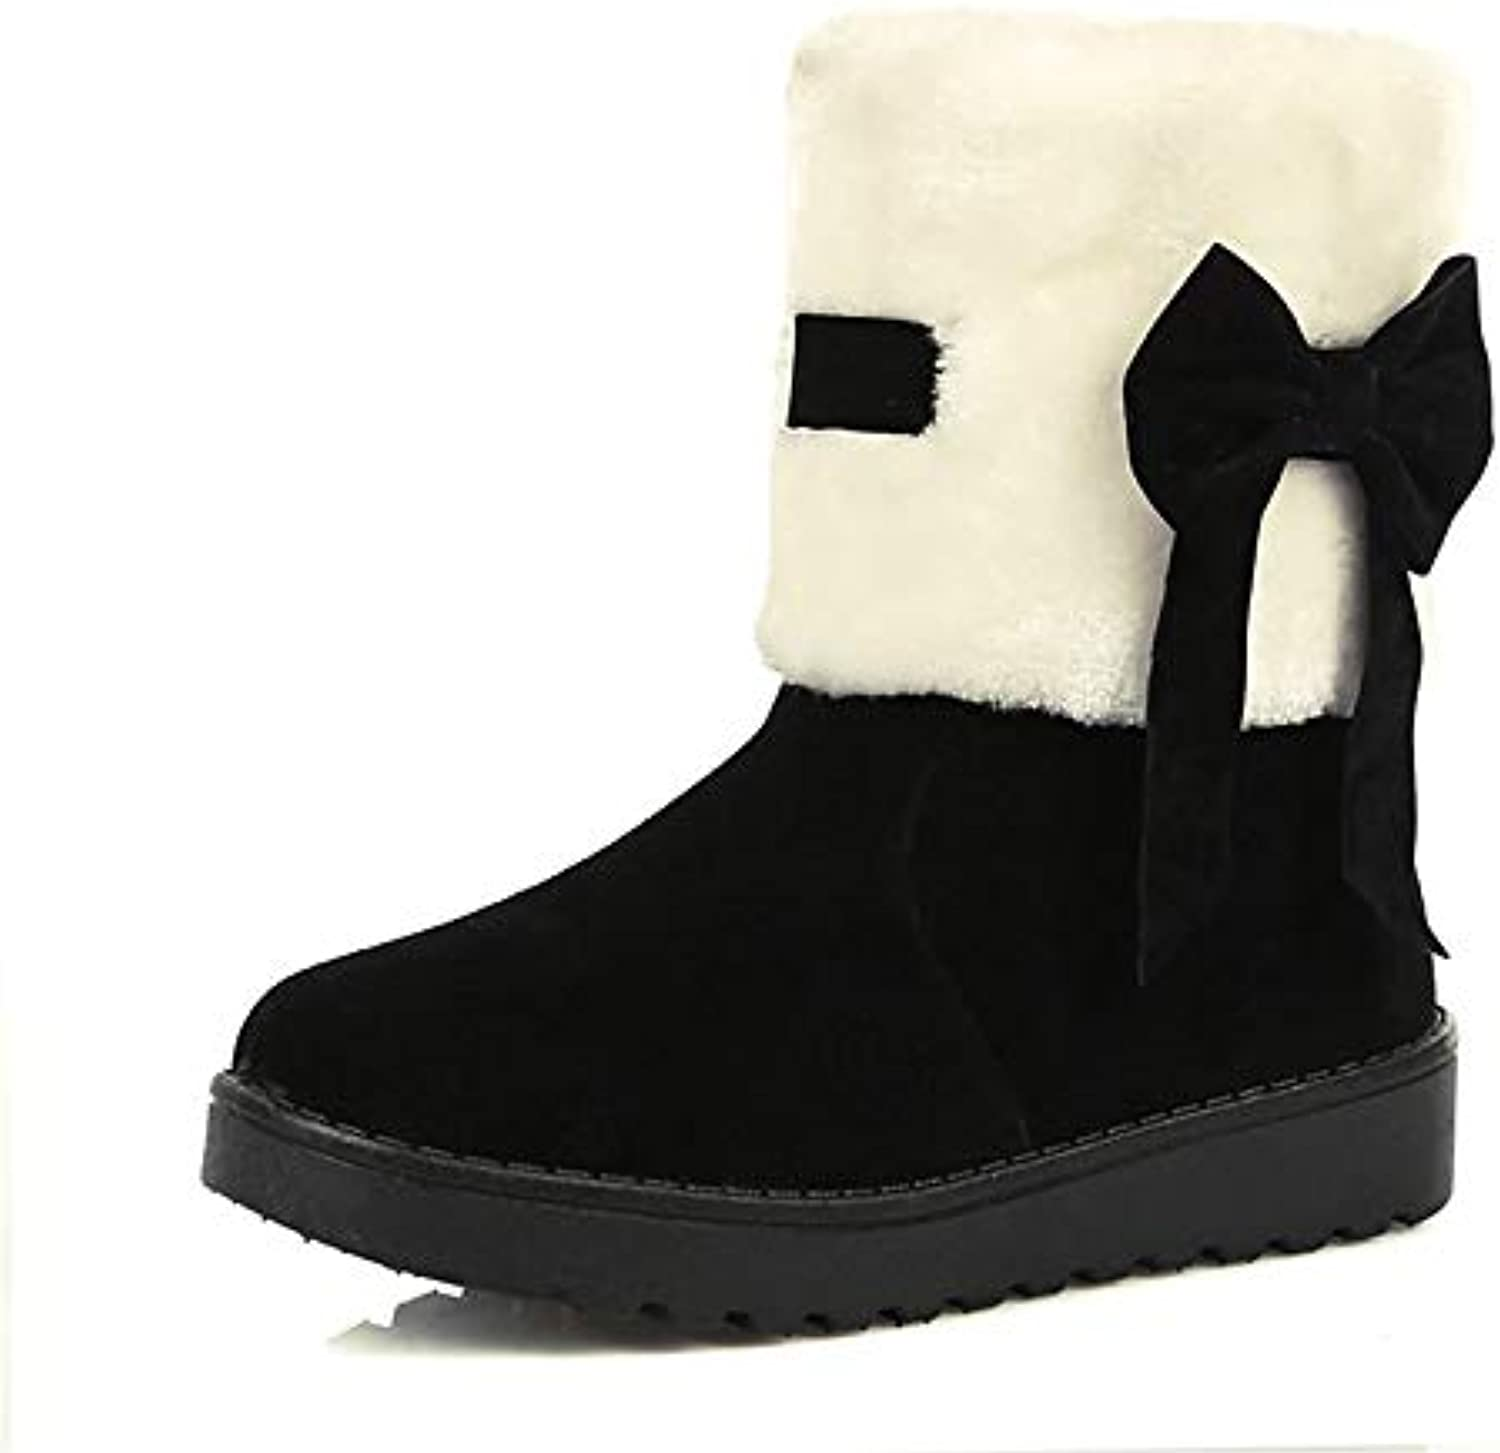 Women's Fashion Boots Synthetics Winter Boots Flat Heel Round Toe MidCalf Boots Bowknot Black Wine   Almond Party & Evening